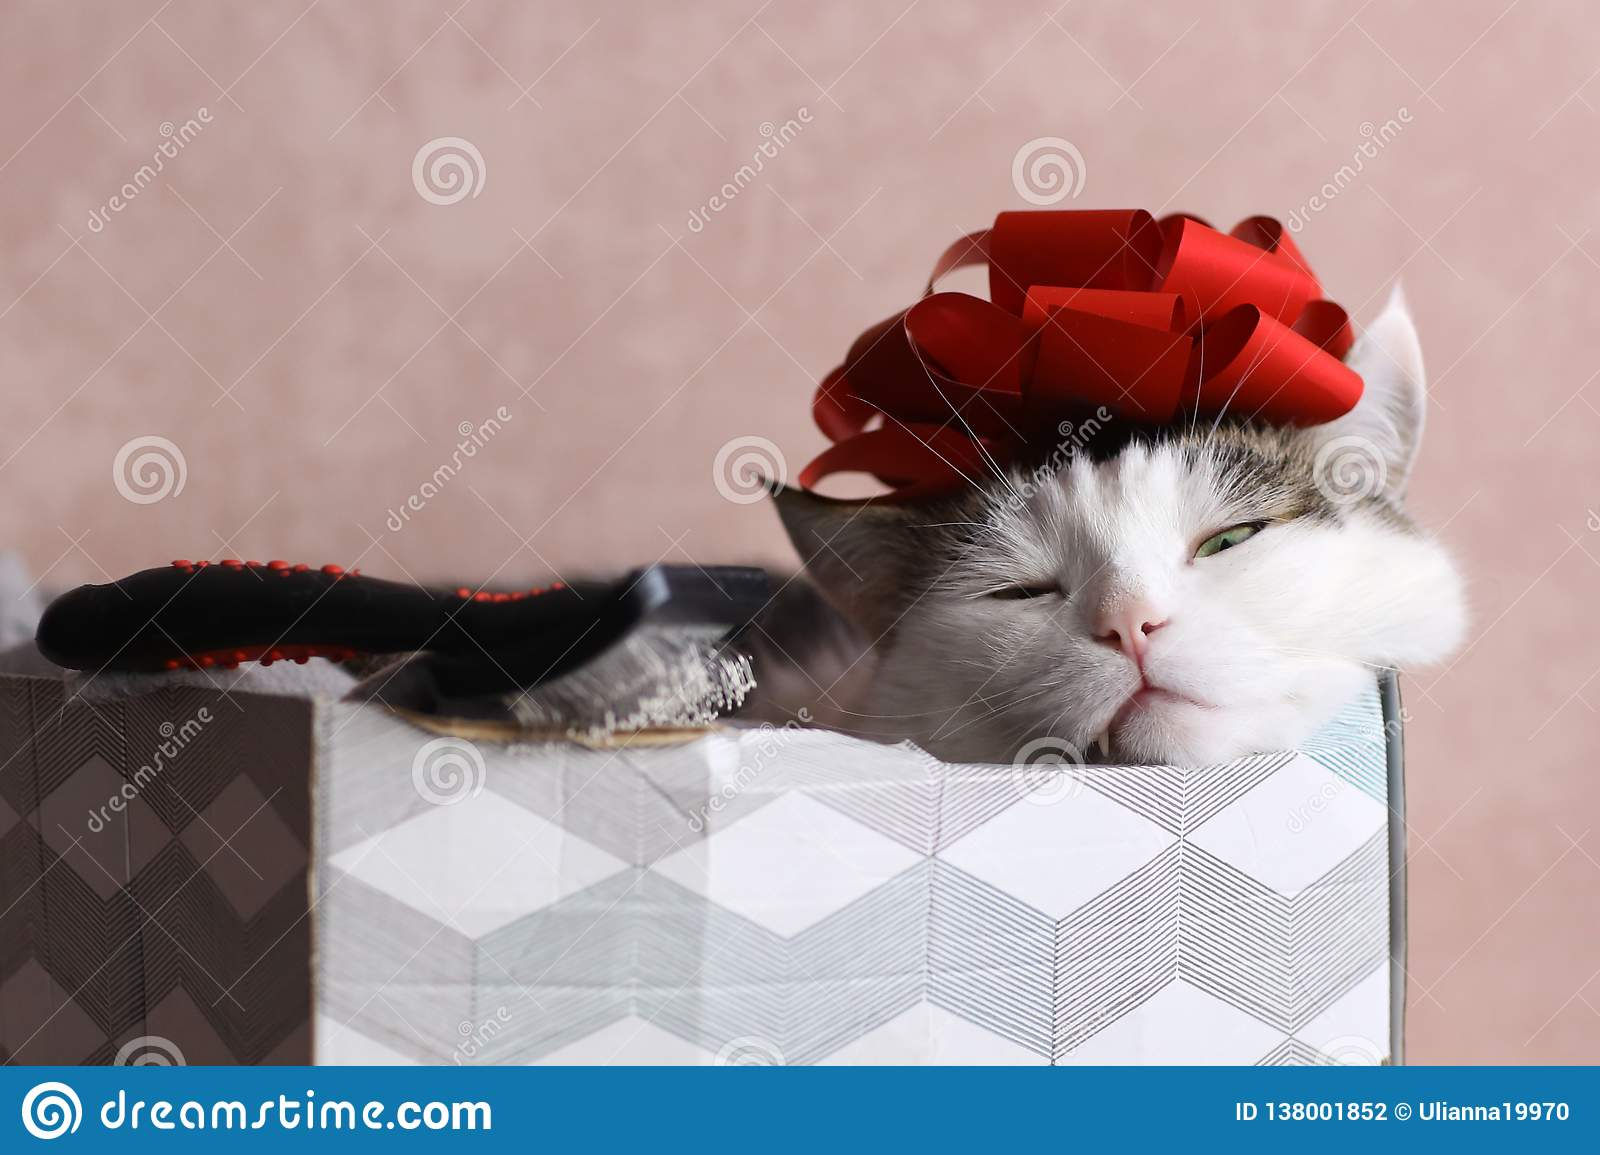 Funny cat photo sleeping in gift box with red bow on head